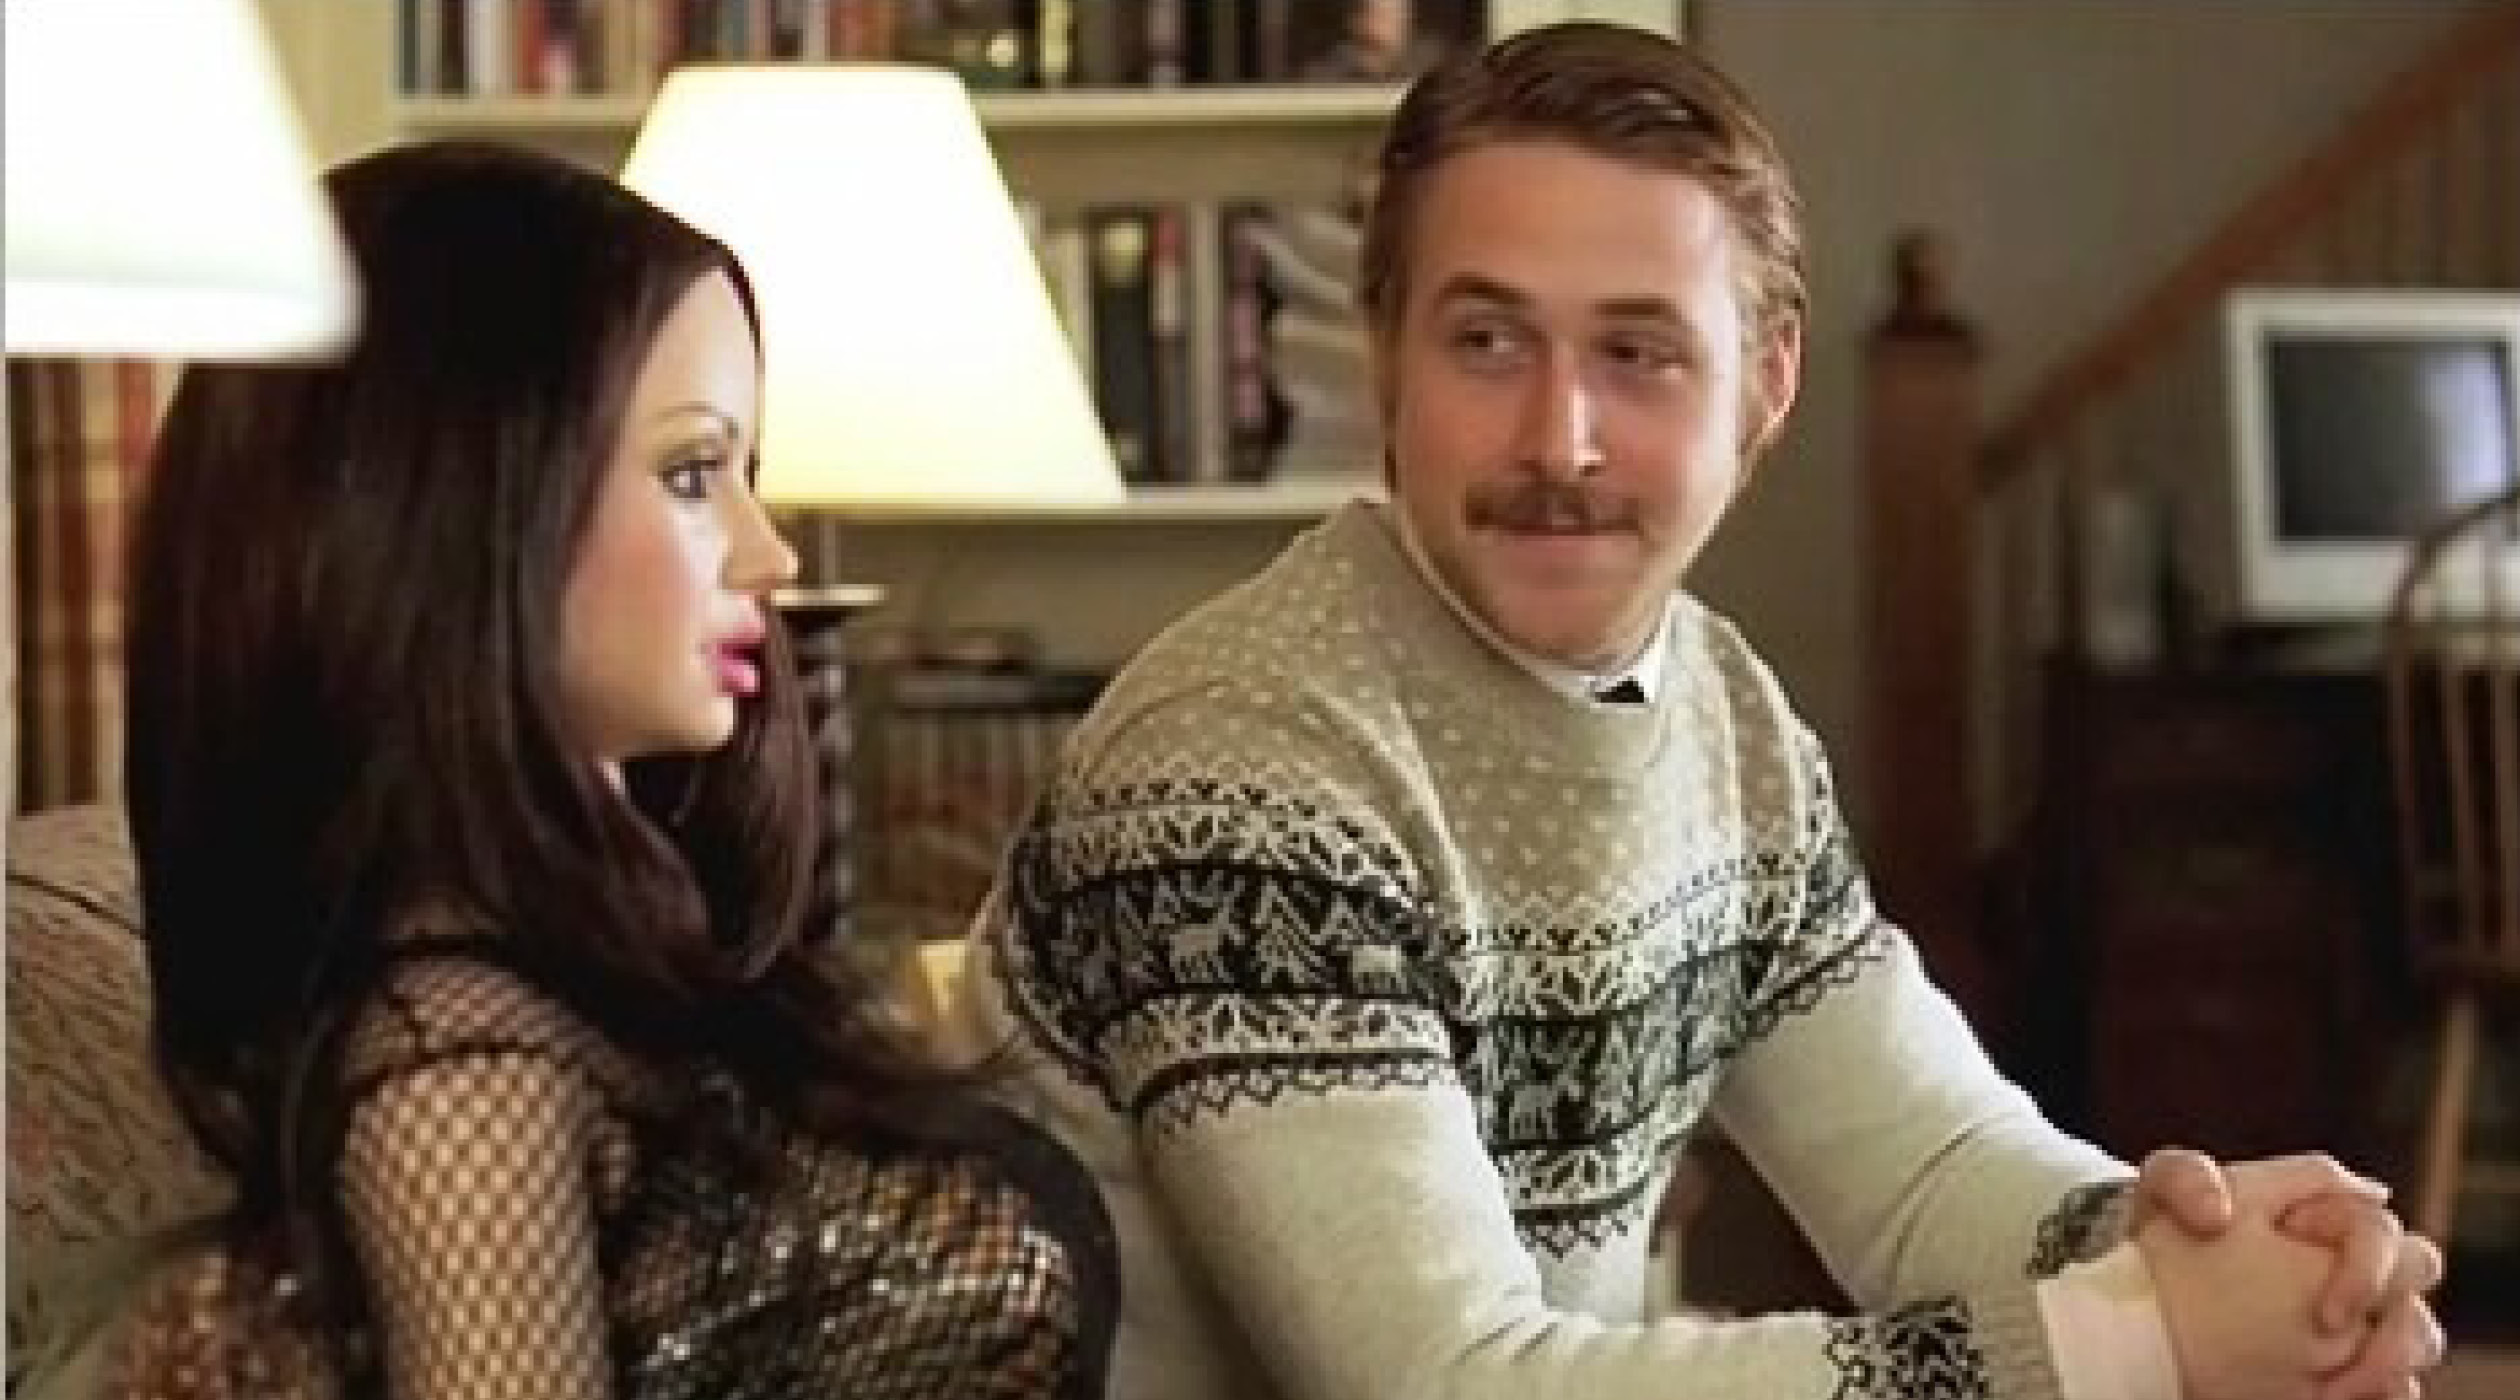 A New Image of Community Lars and the Real Girl  synkroniciti